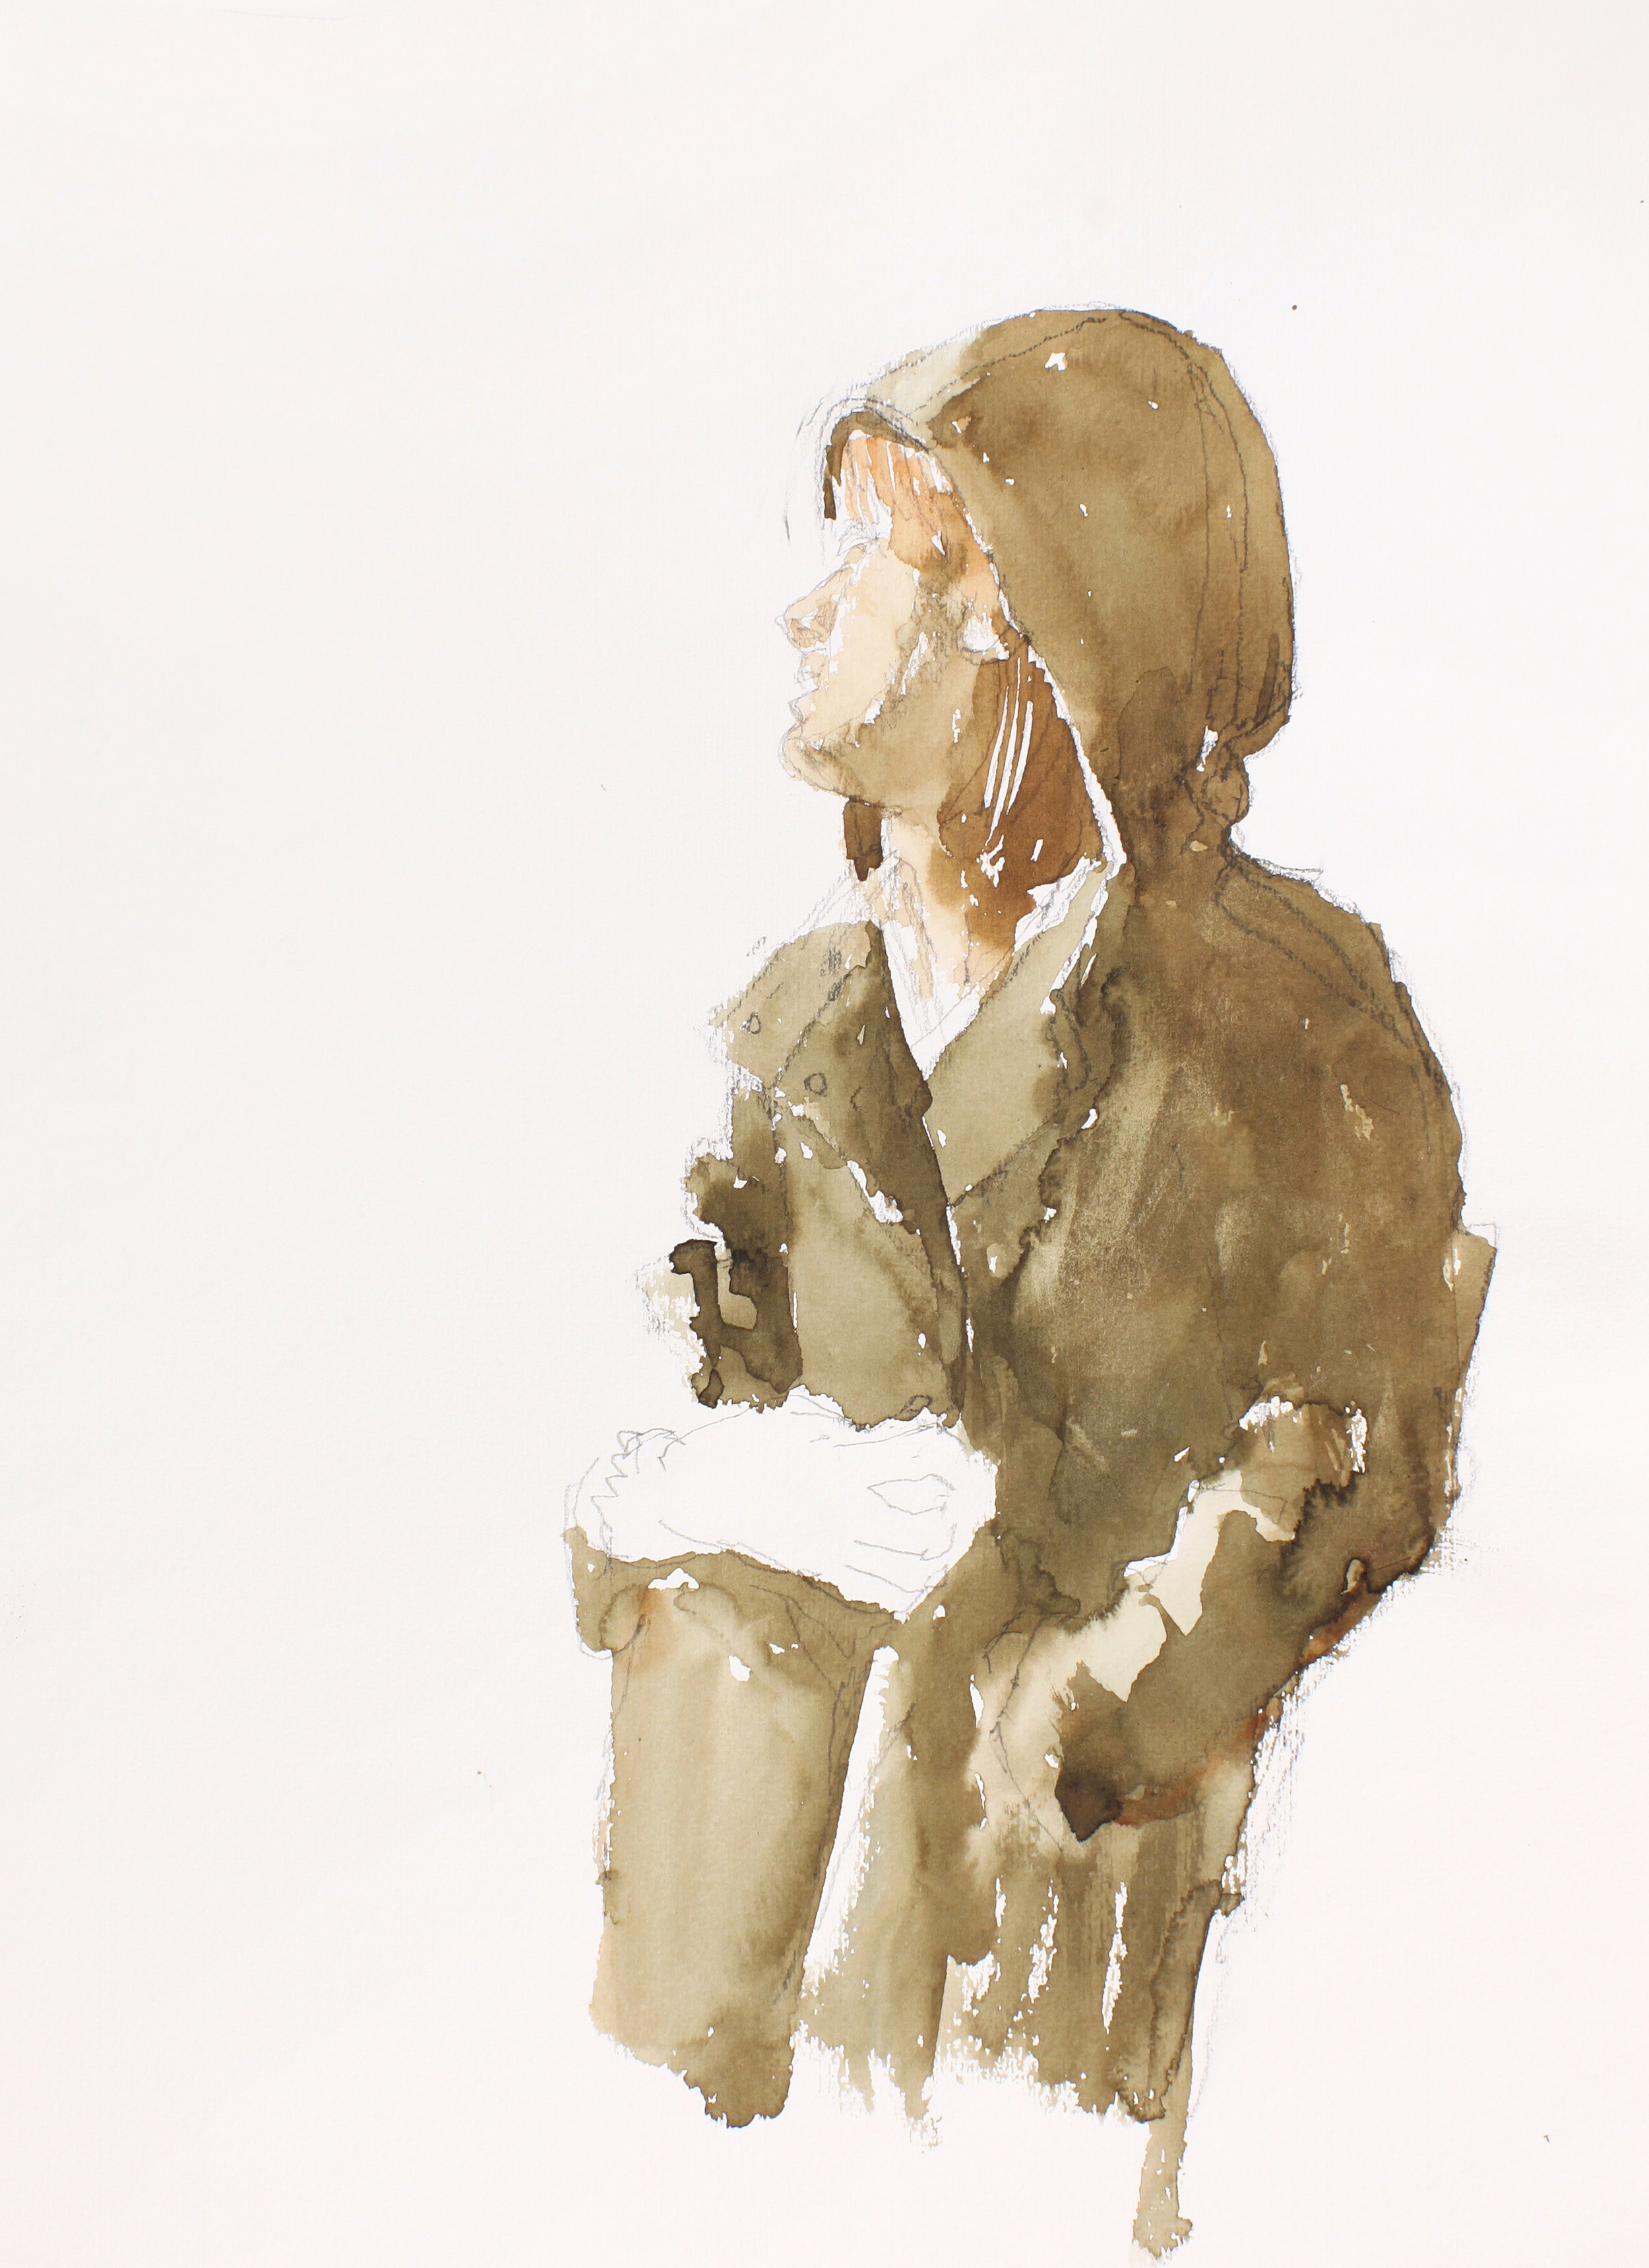 2005_Woman_with_Hooded_Coat_Watercolour_and_pencil_on_paper_15x11inches_WPF091.jpg